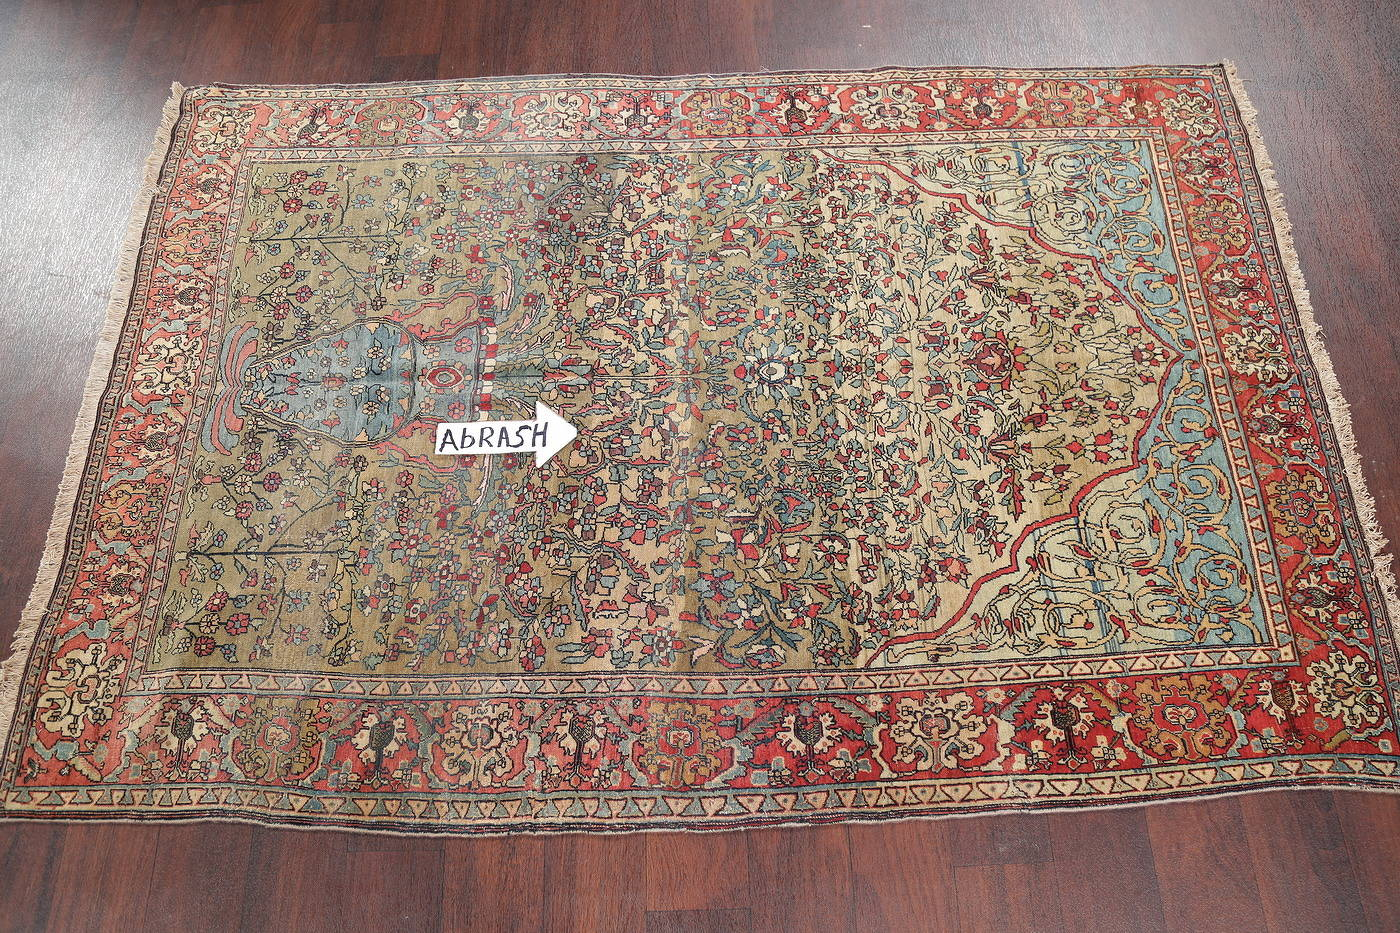 Antique Green Pictorial Kashan Mohtasham Persian Area Rug 4x6 image 13